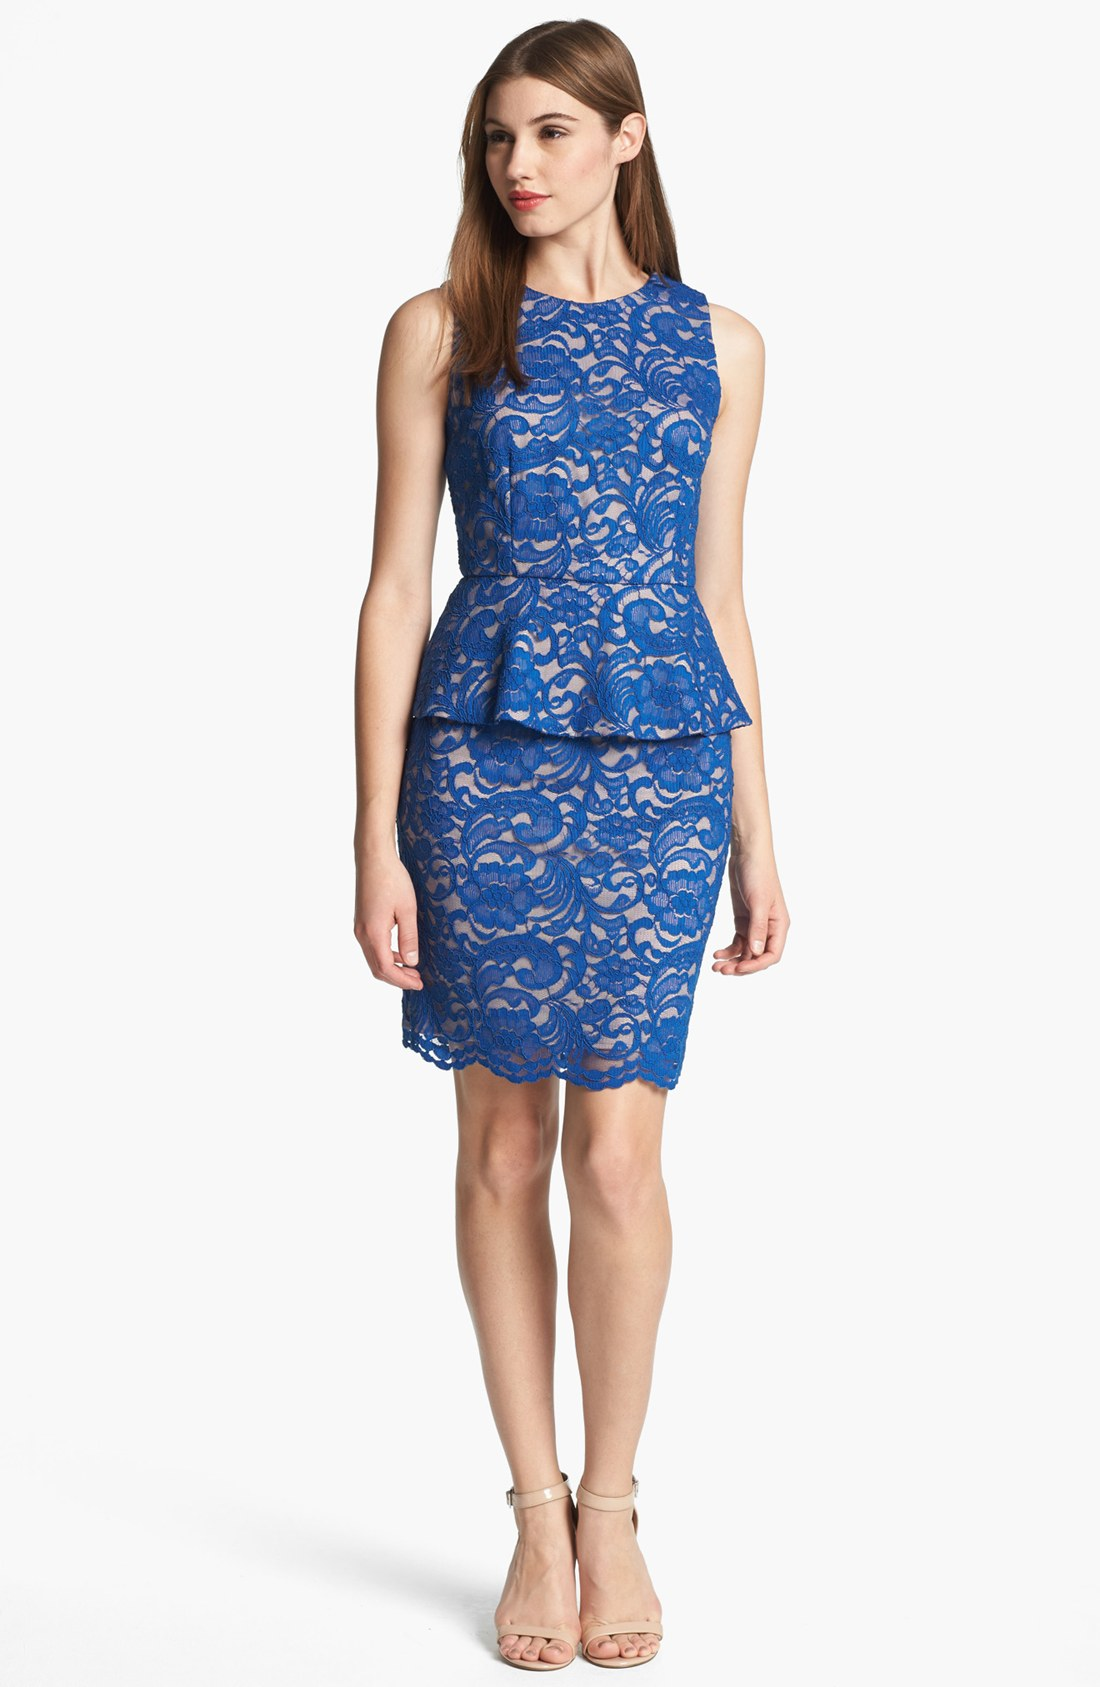 Get the best deals on blue hm peplum dress and save up to 70% off at Poshmark now! Whatever you're shopping for, we've got it.